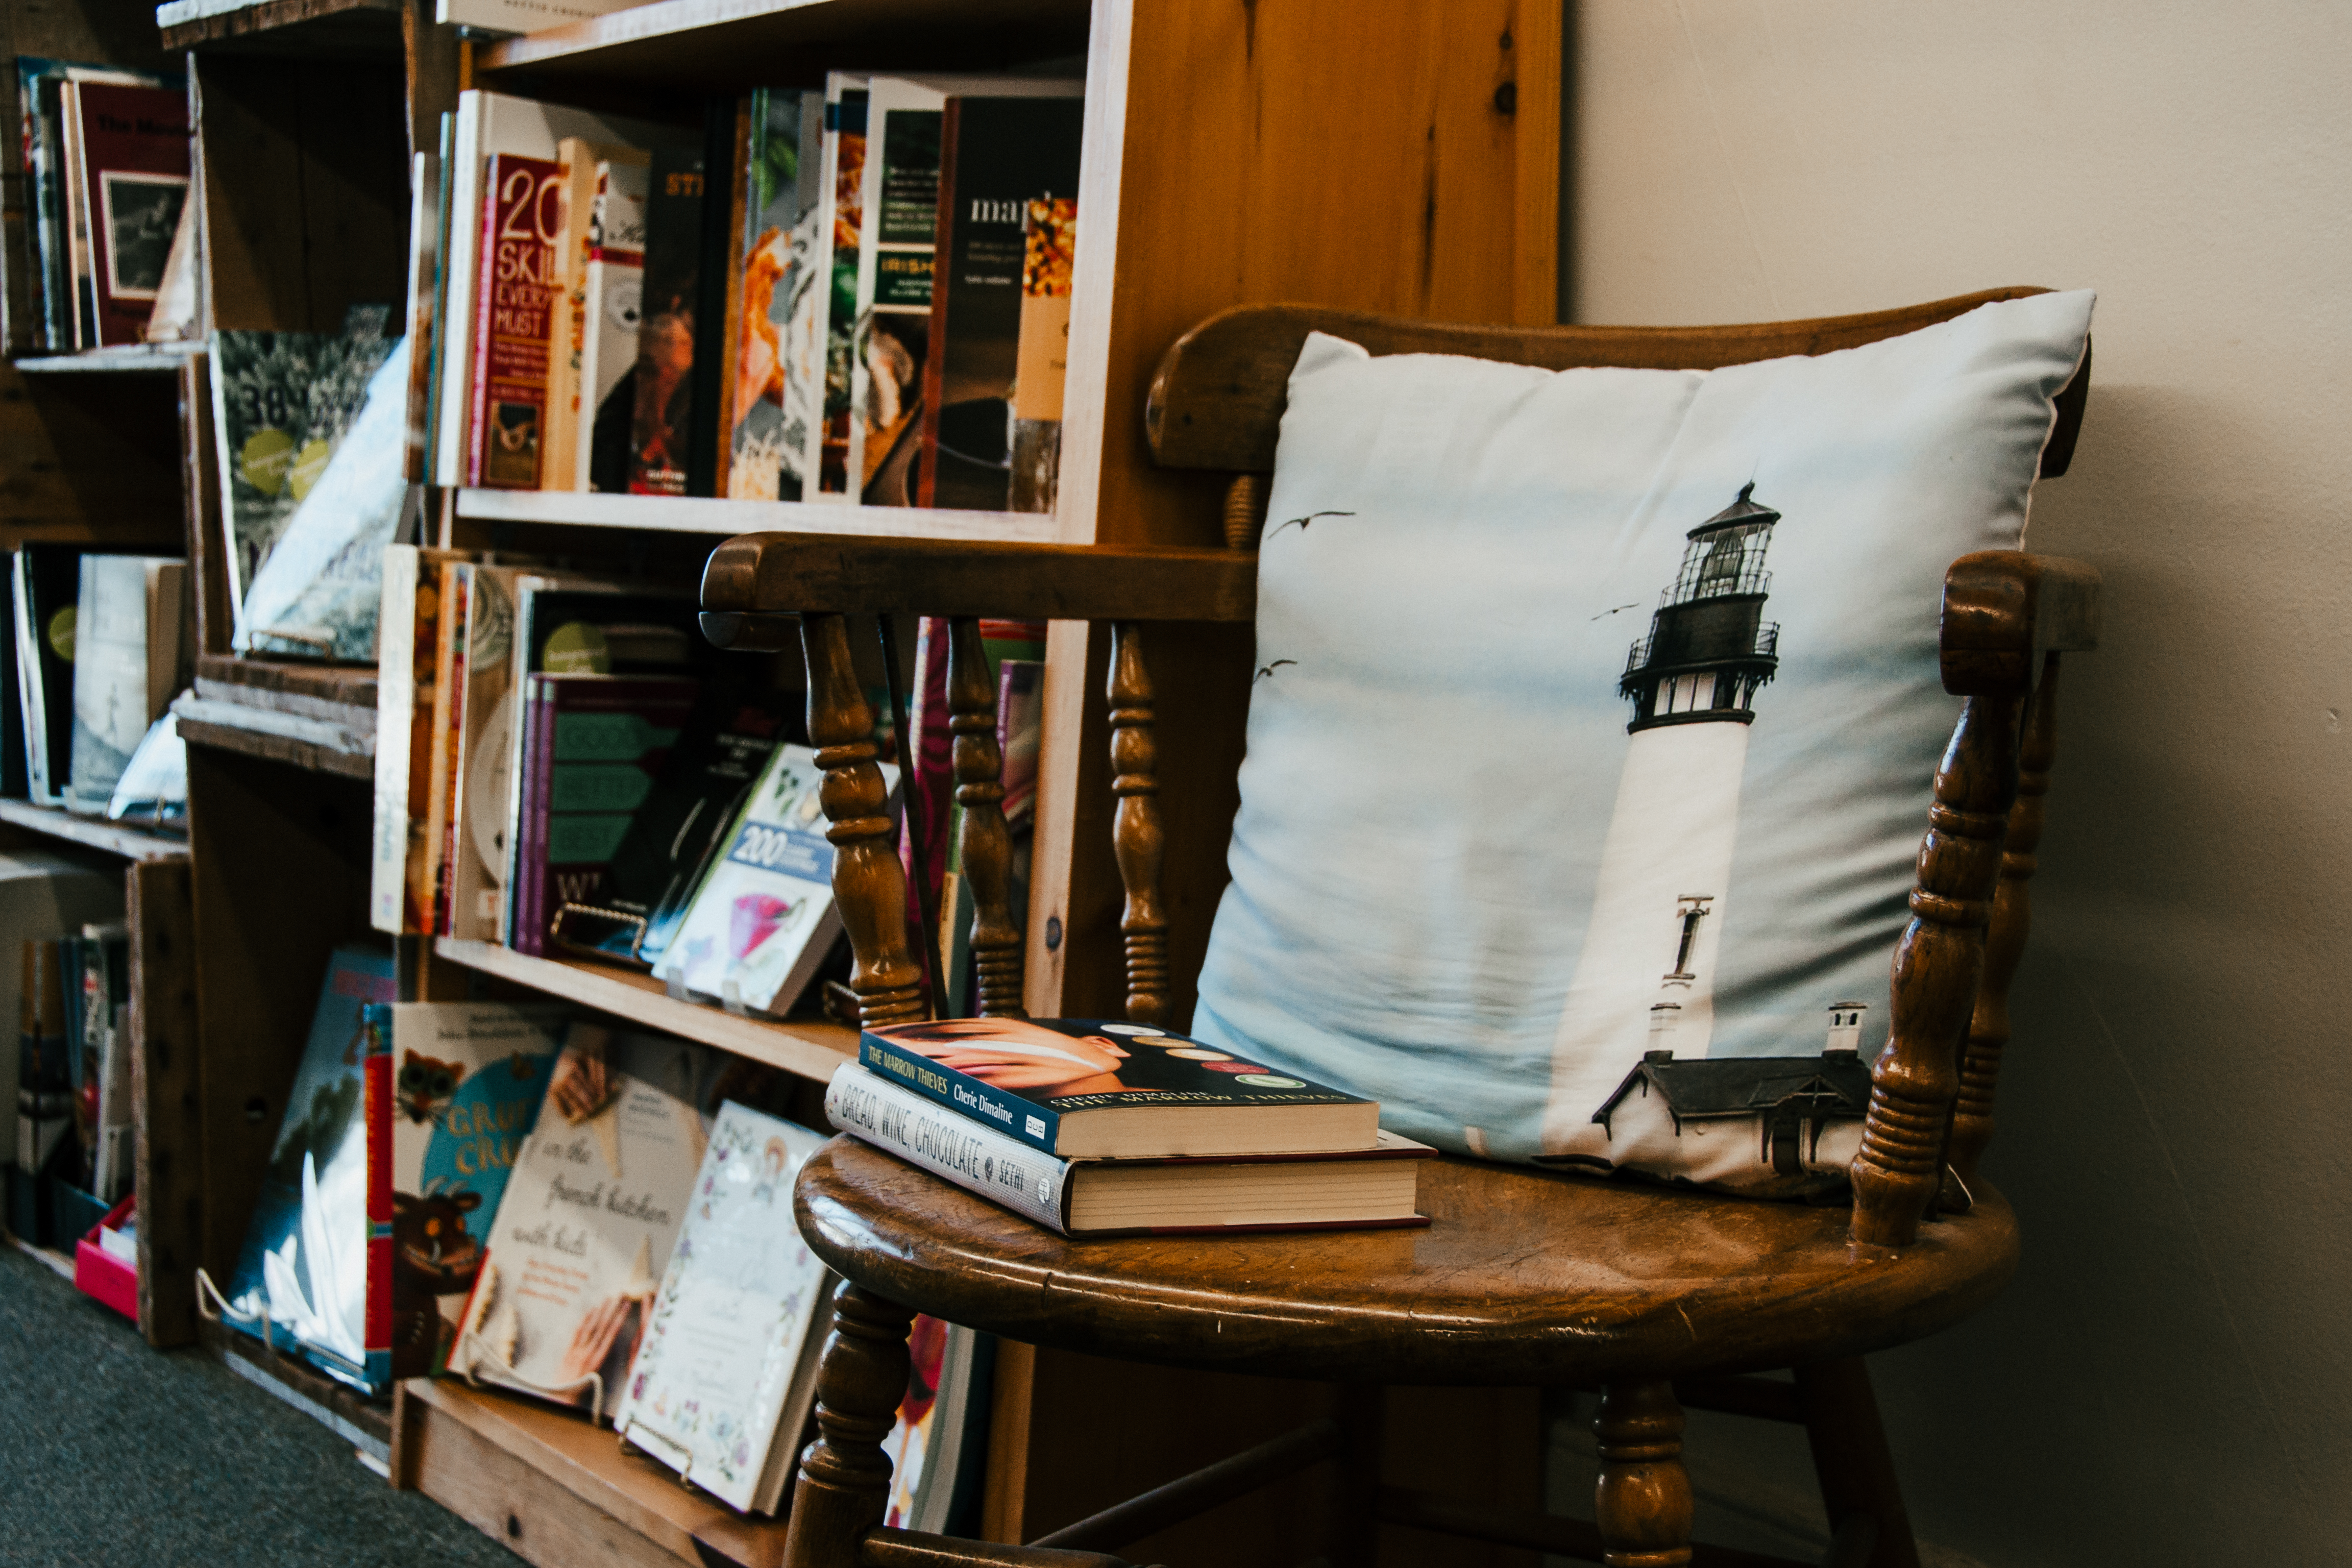 Books and a lighthouse pillow stacked on a chair at Lighthouse Books in Brighton, Ontario.